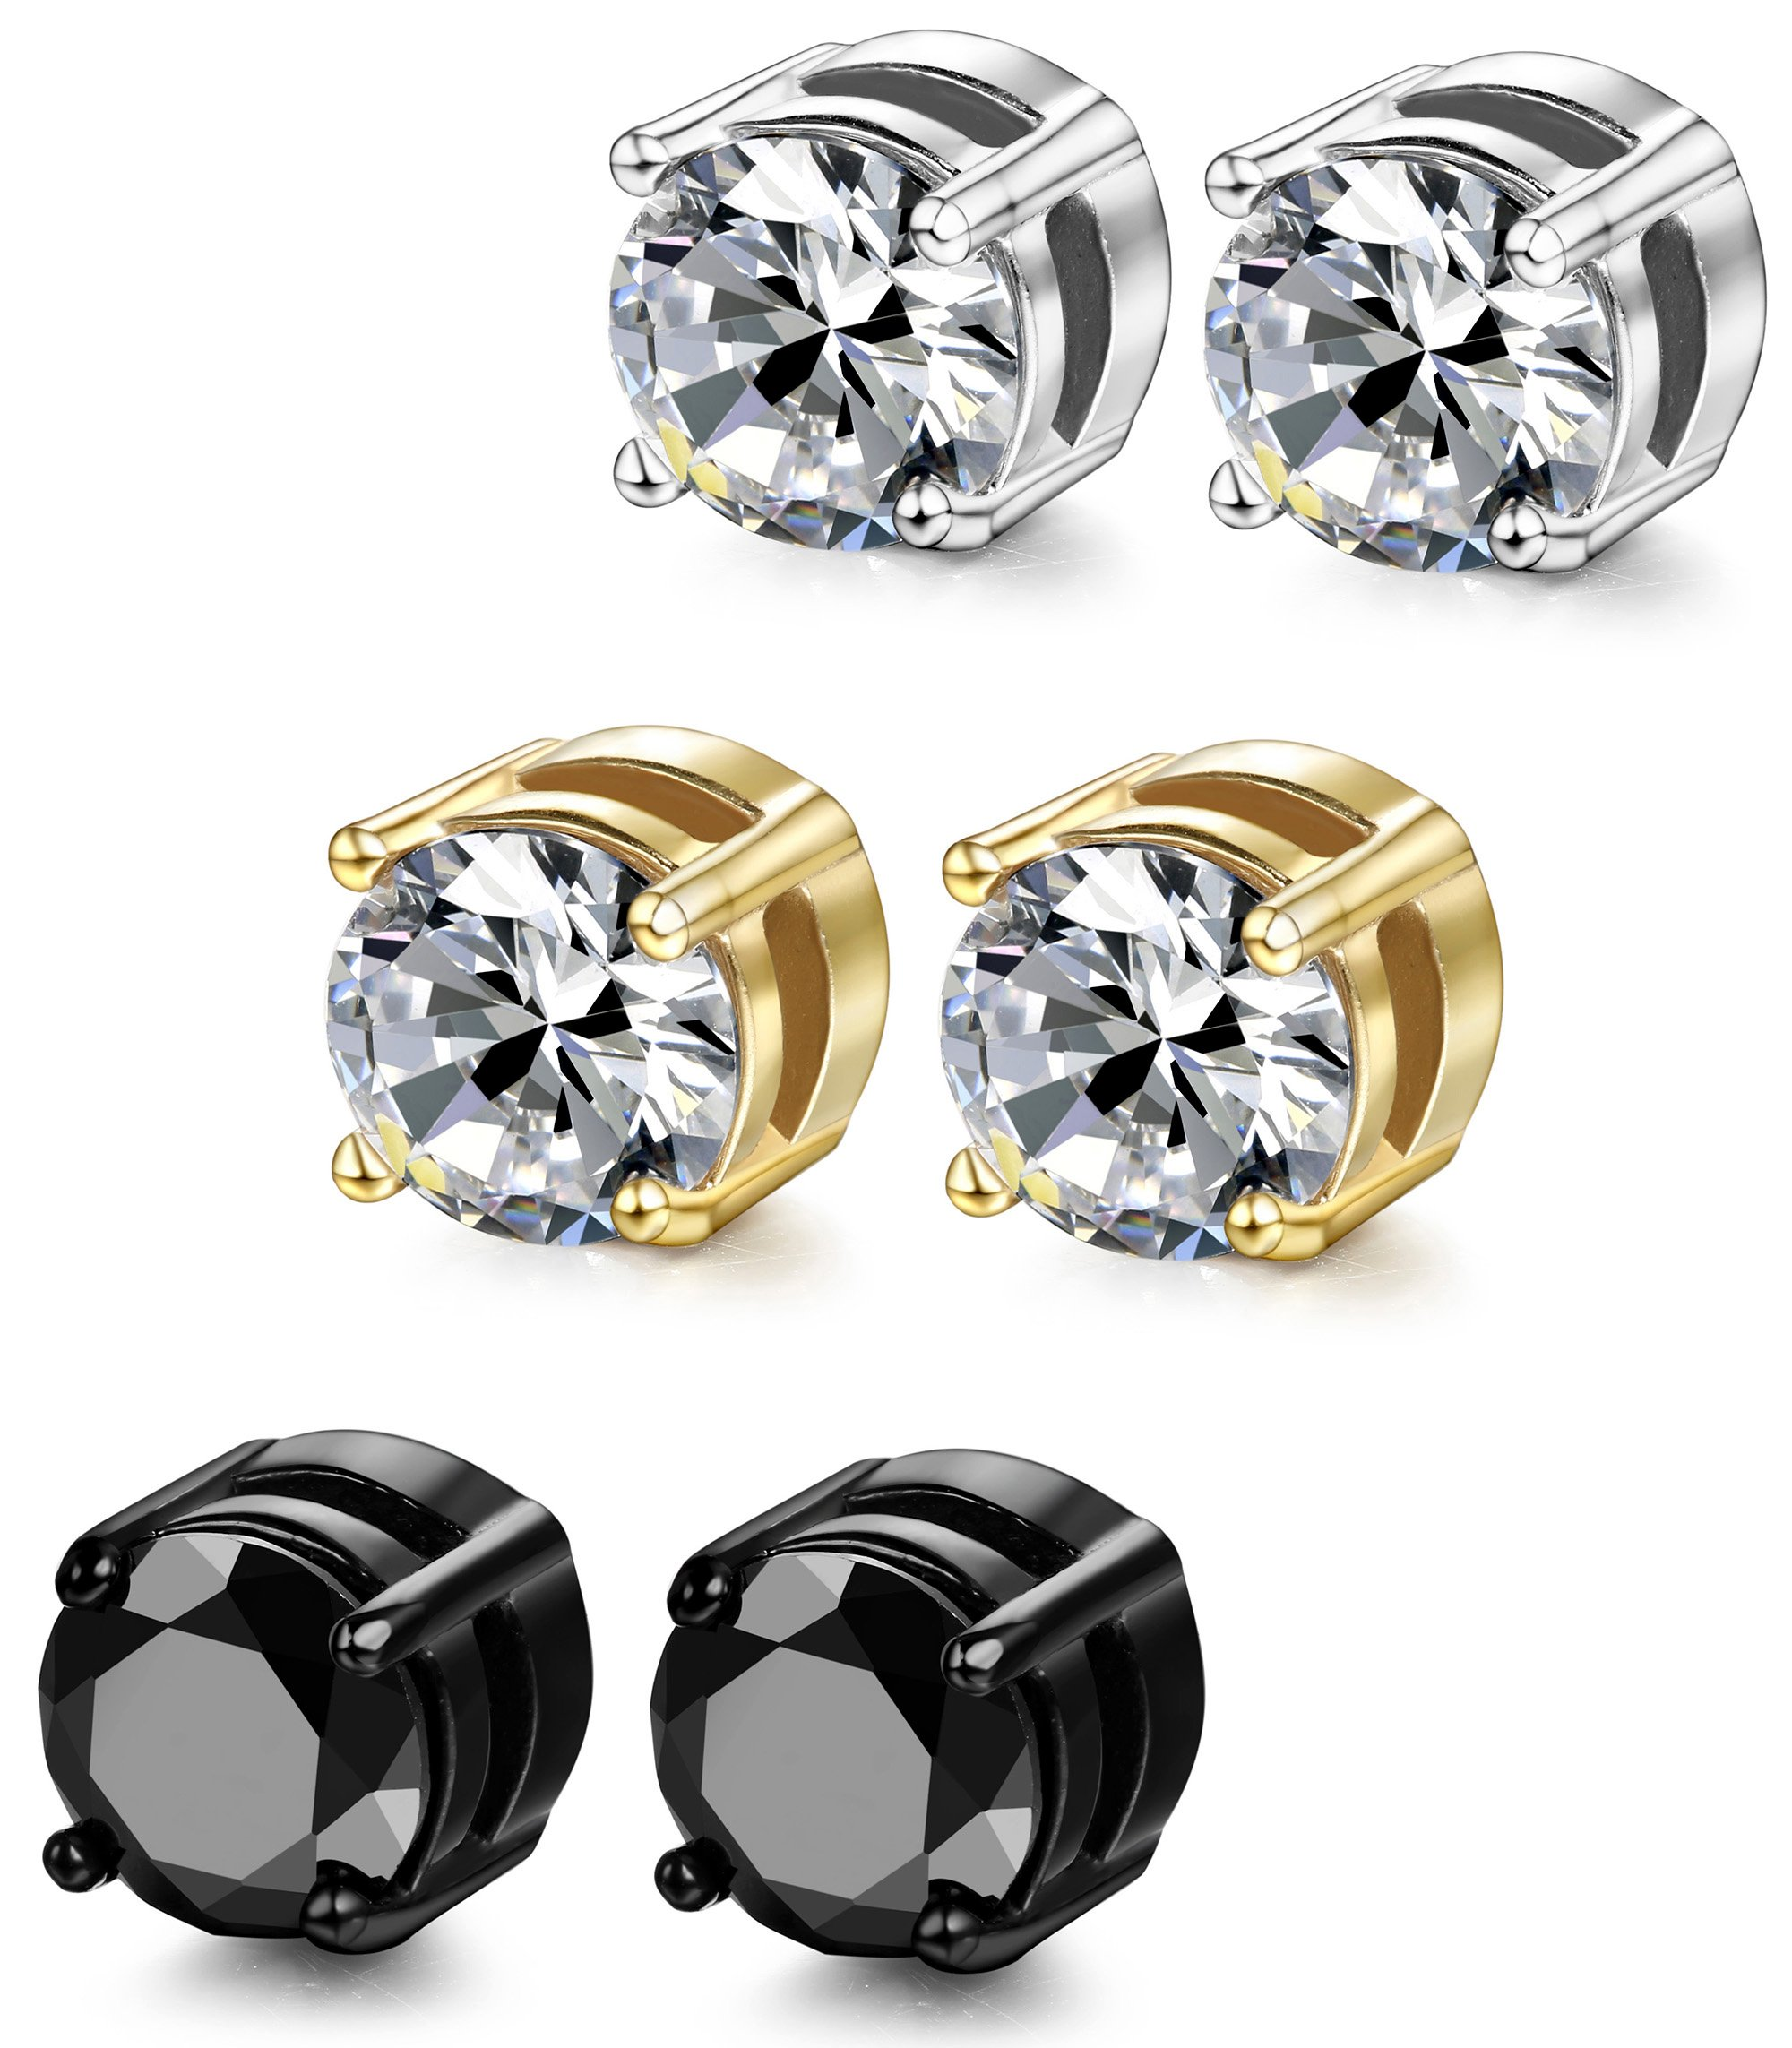 ORAZIO 3 Pairs Stainless Steel Magnetic Stud Earrings for Womens Mens Non Piercing Cubic Zirconia 8mm by ORAZIO (Image #4)